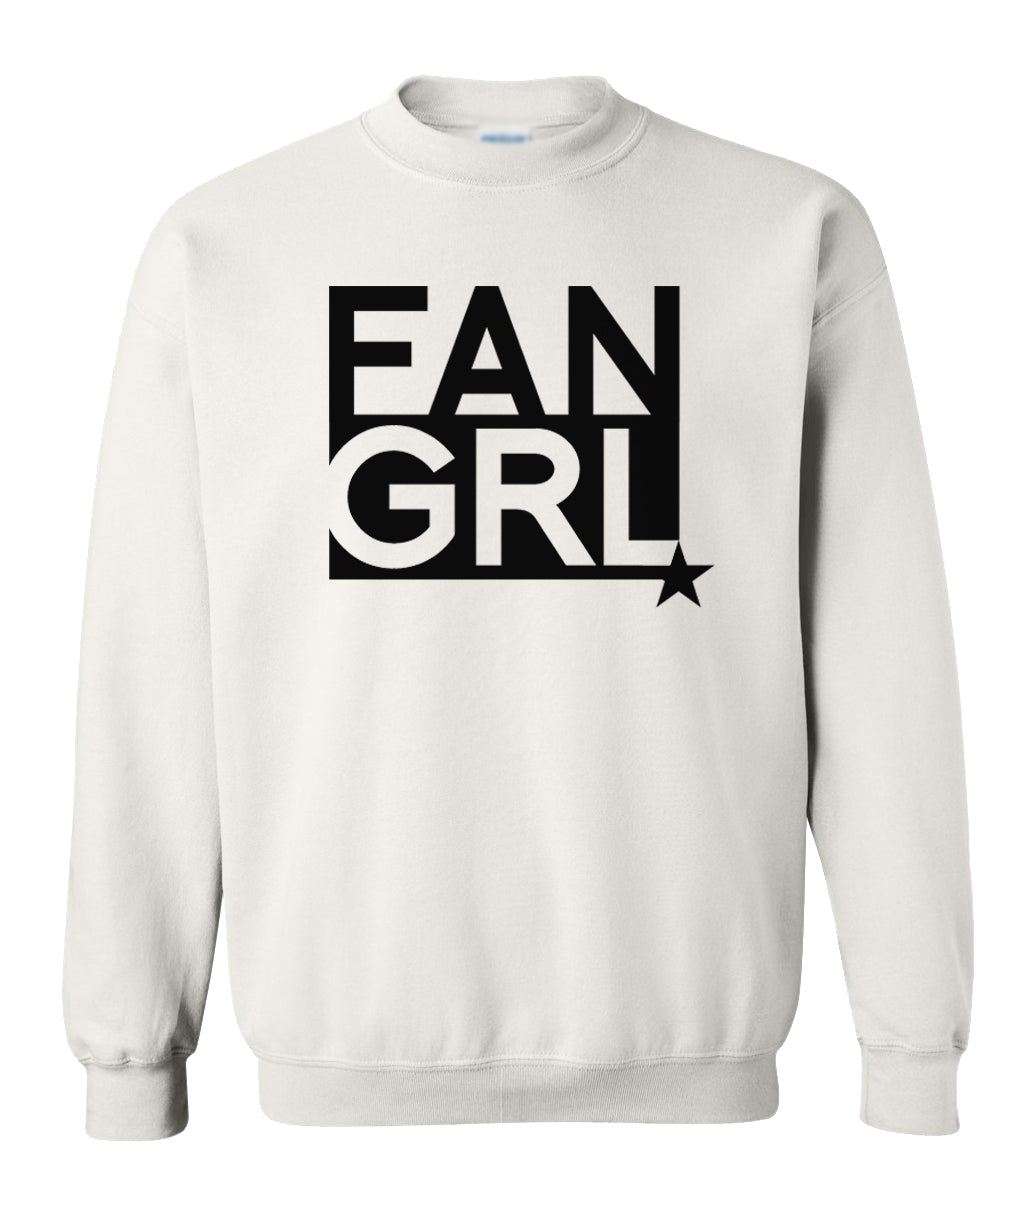 white fan girl sweatshirt